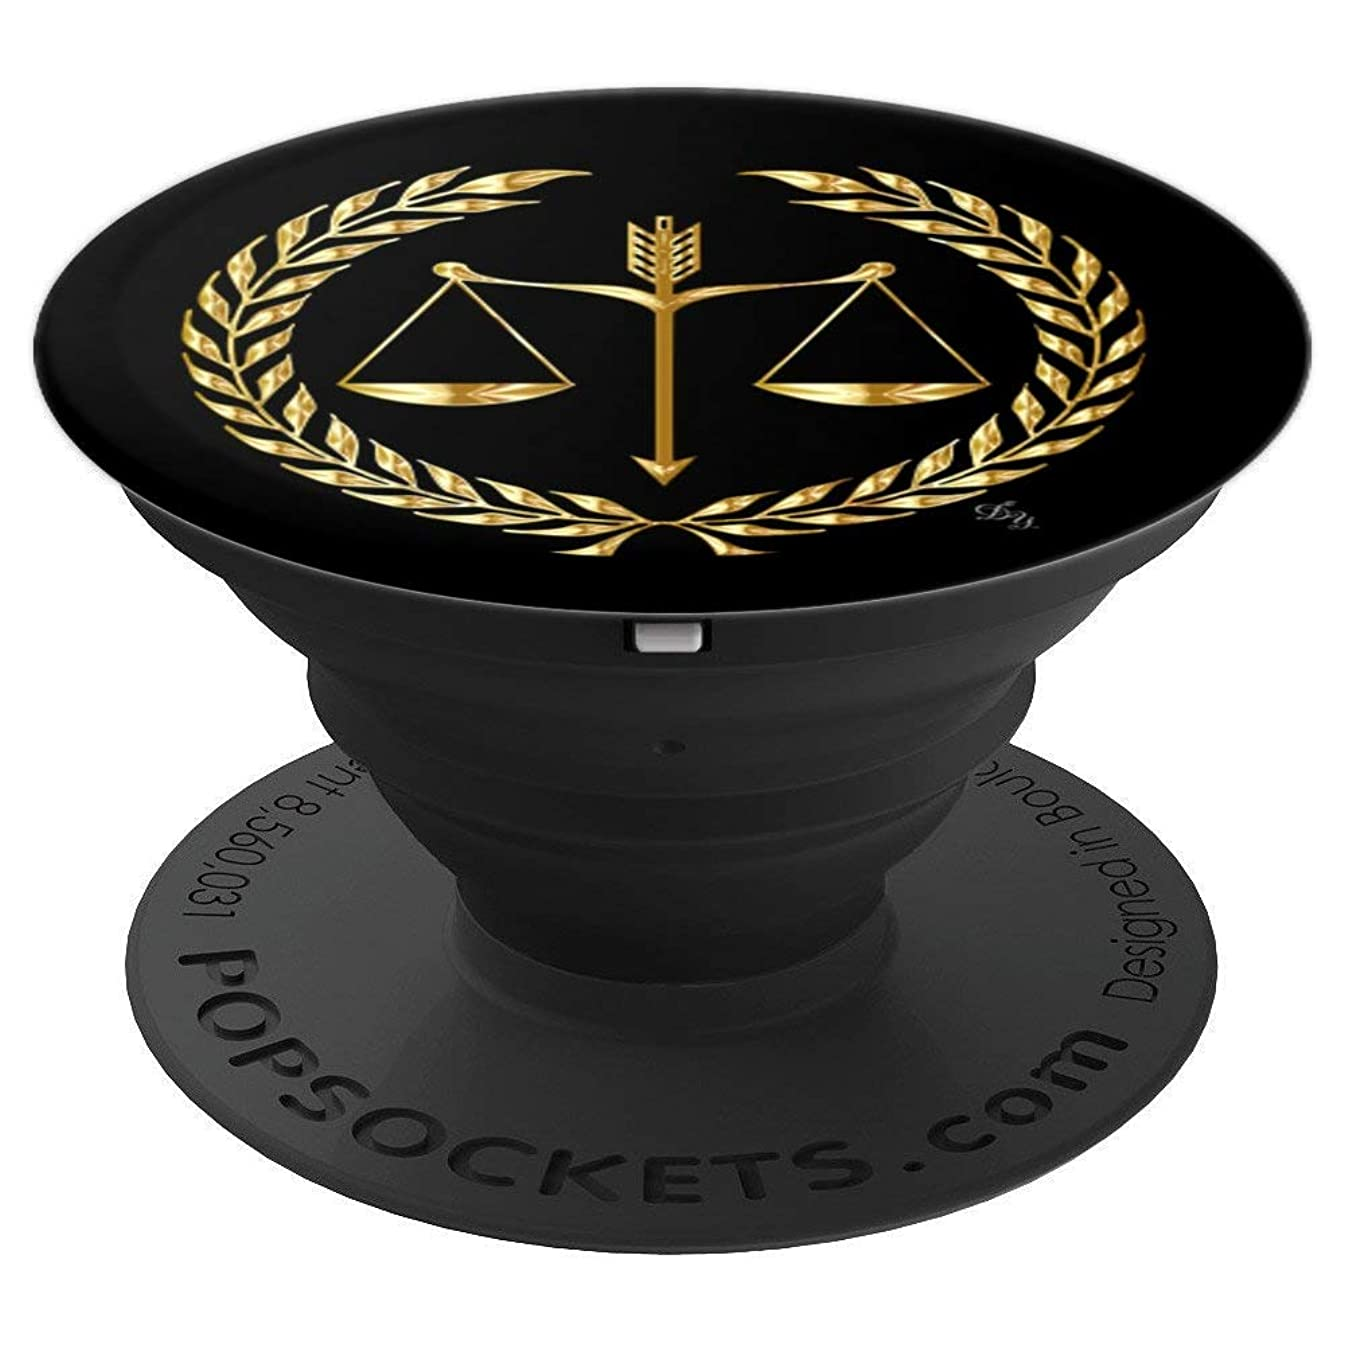 I'm A Lawyer Scales of Justice Trust Me Attorneys Gift Idea - PopSockets Grip and Stand for Phones and Tablets